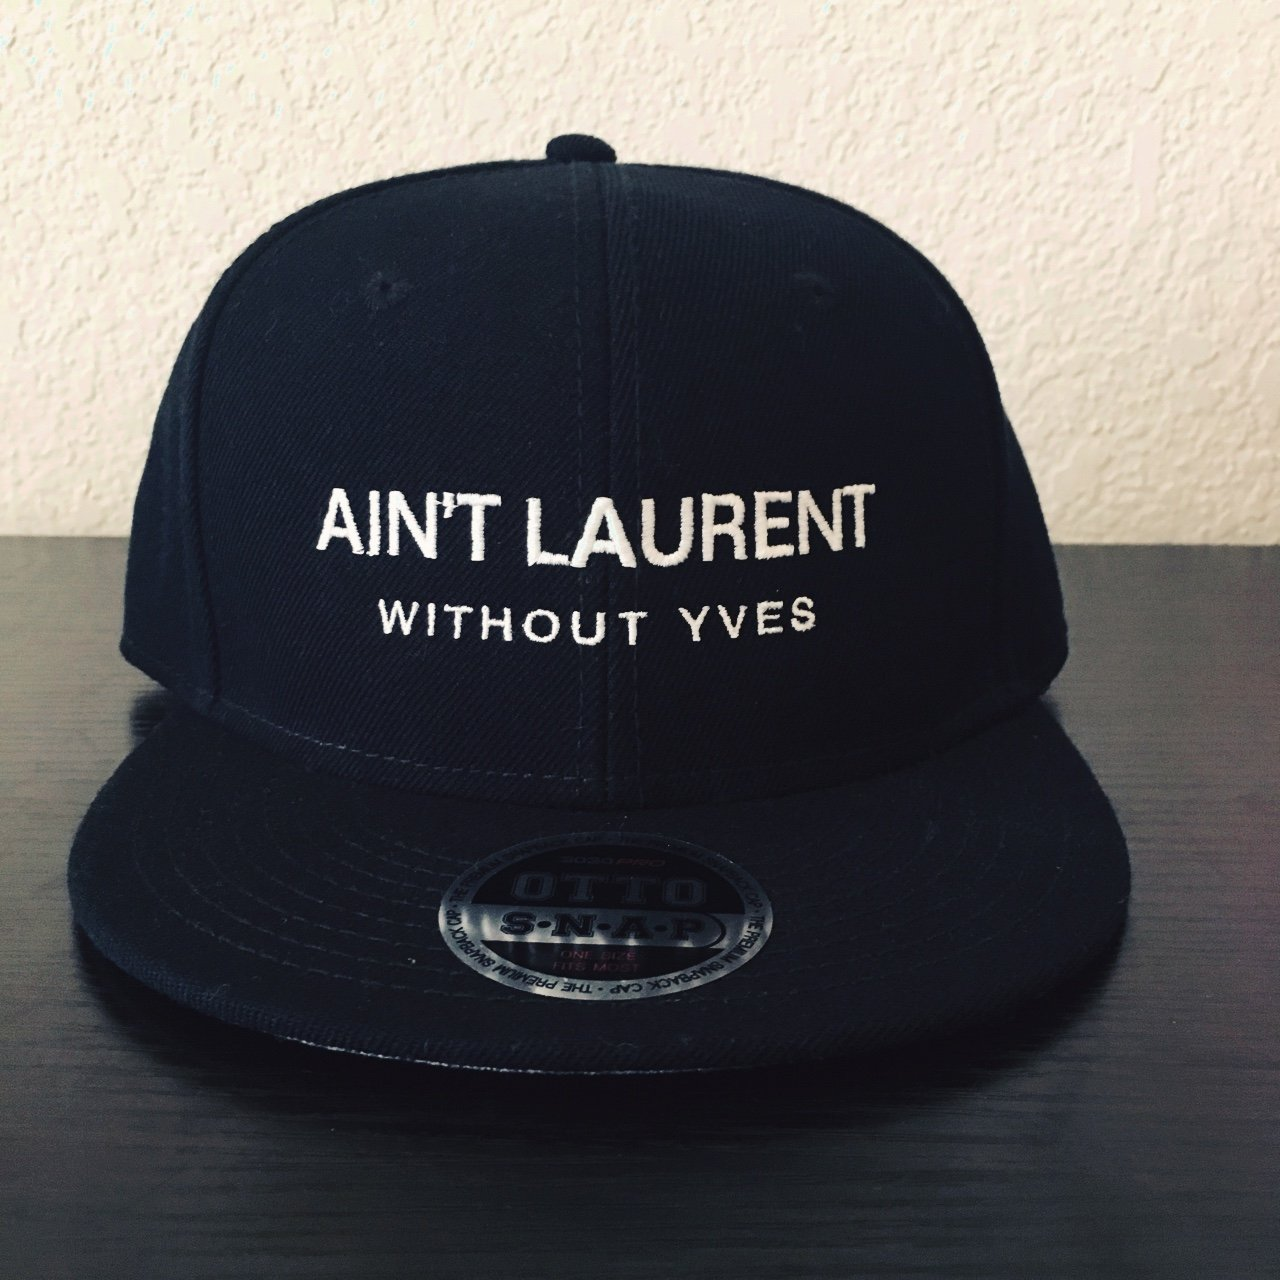 cc6b9318 Ain't Laurent Without Yves SnapBack Hat in Black - Sizing - - Depop